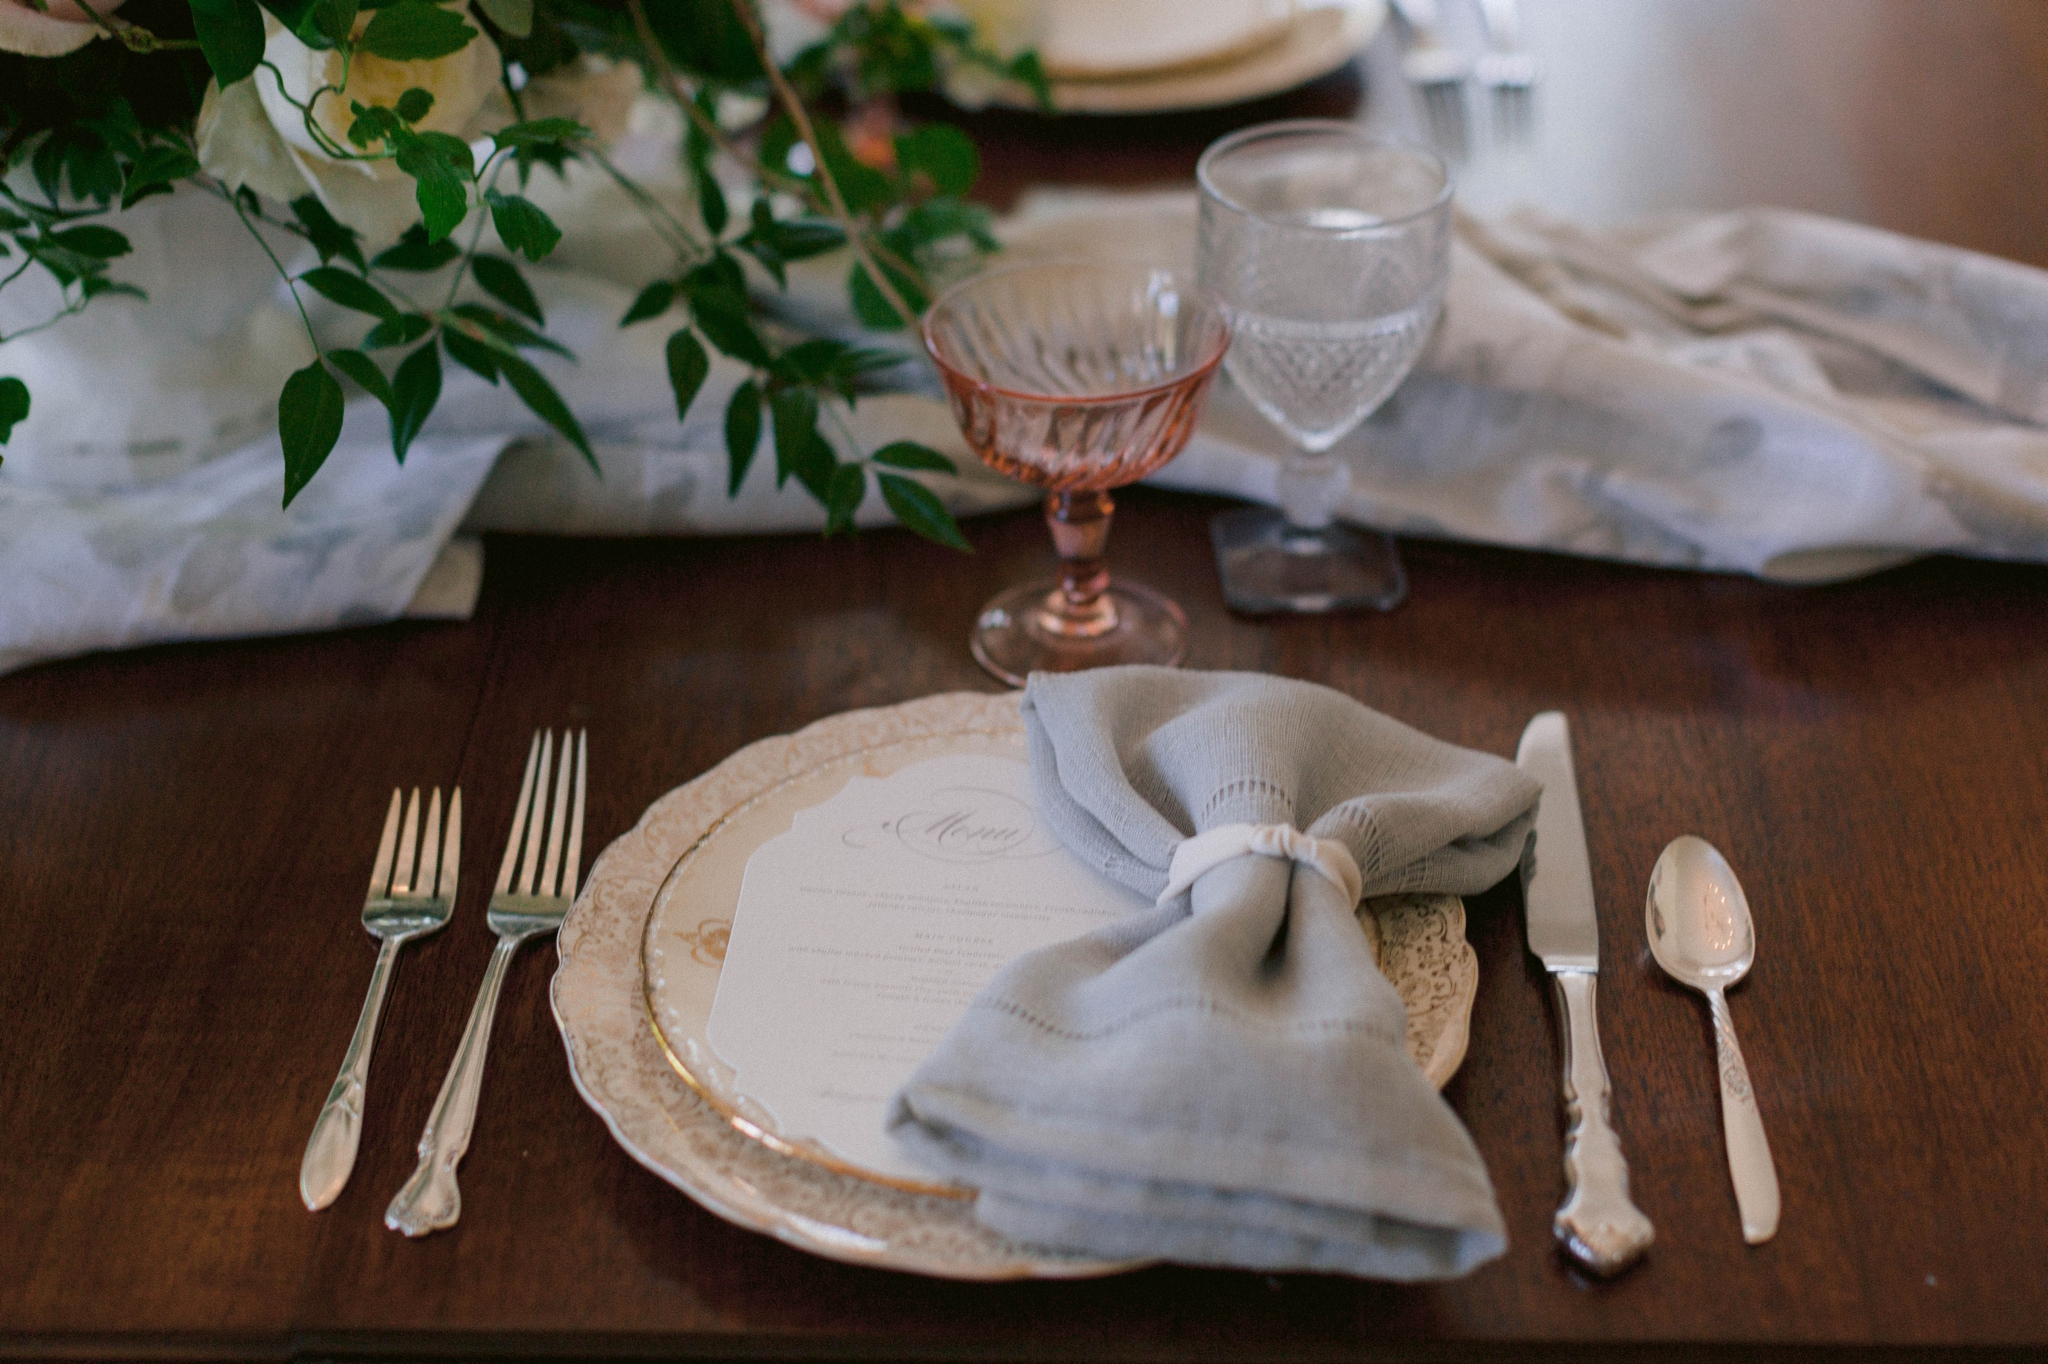 classic and conservative luxury Wedding Table place settings  - blue and pink hues with lots of greenery - reception dinner decoration inspiration - honolulu oahu hawaii wedding photographer - johanna dye photography